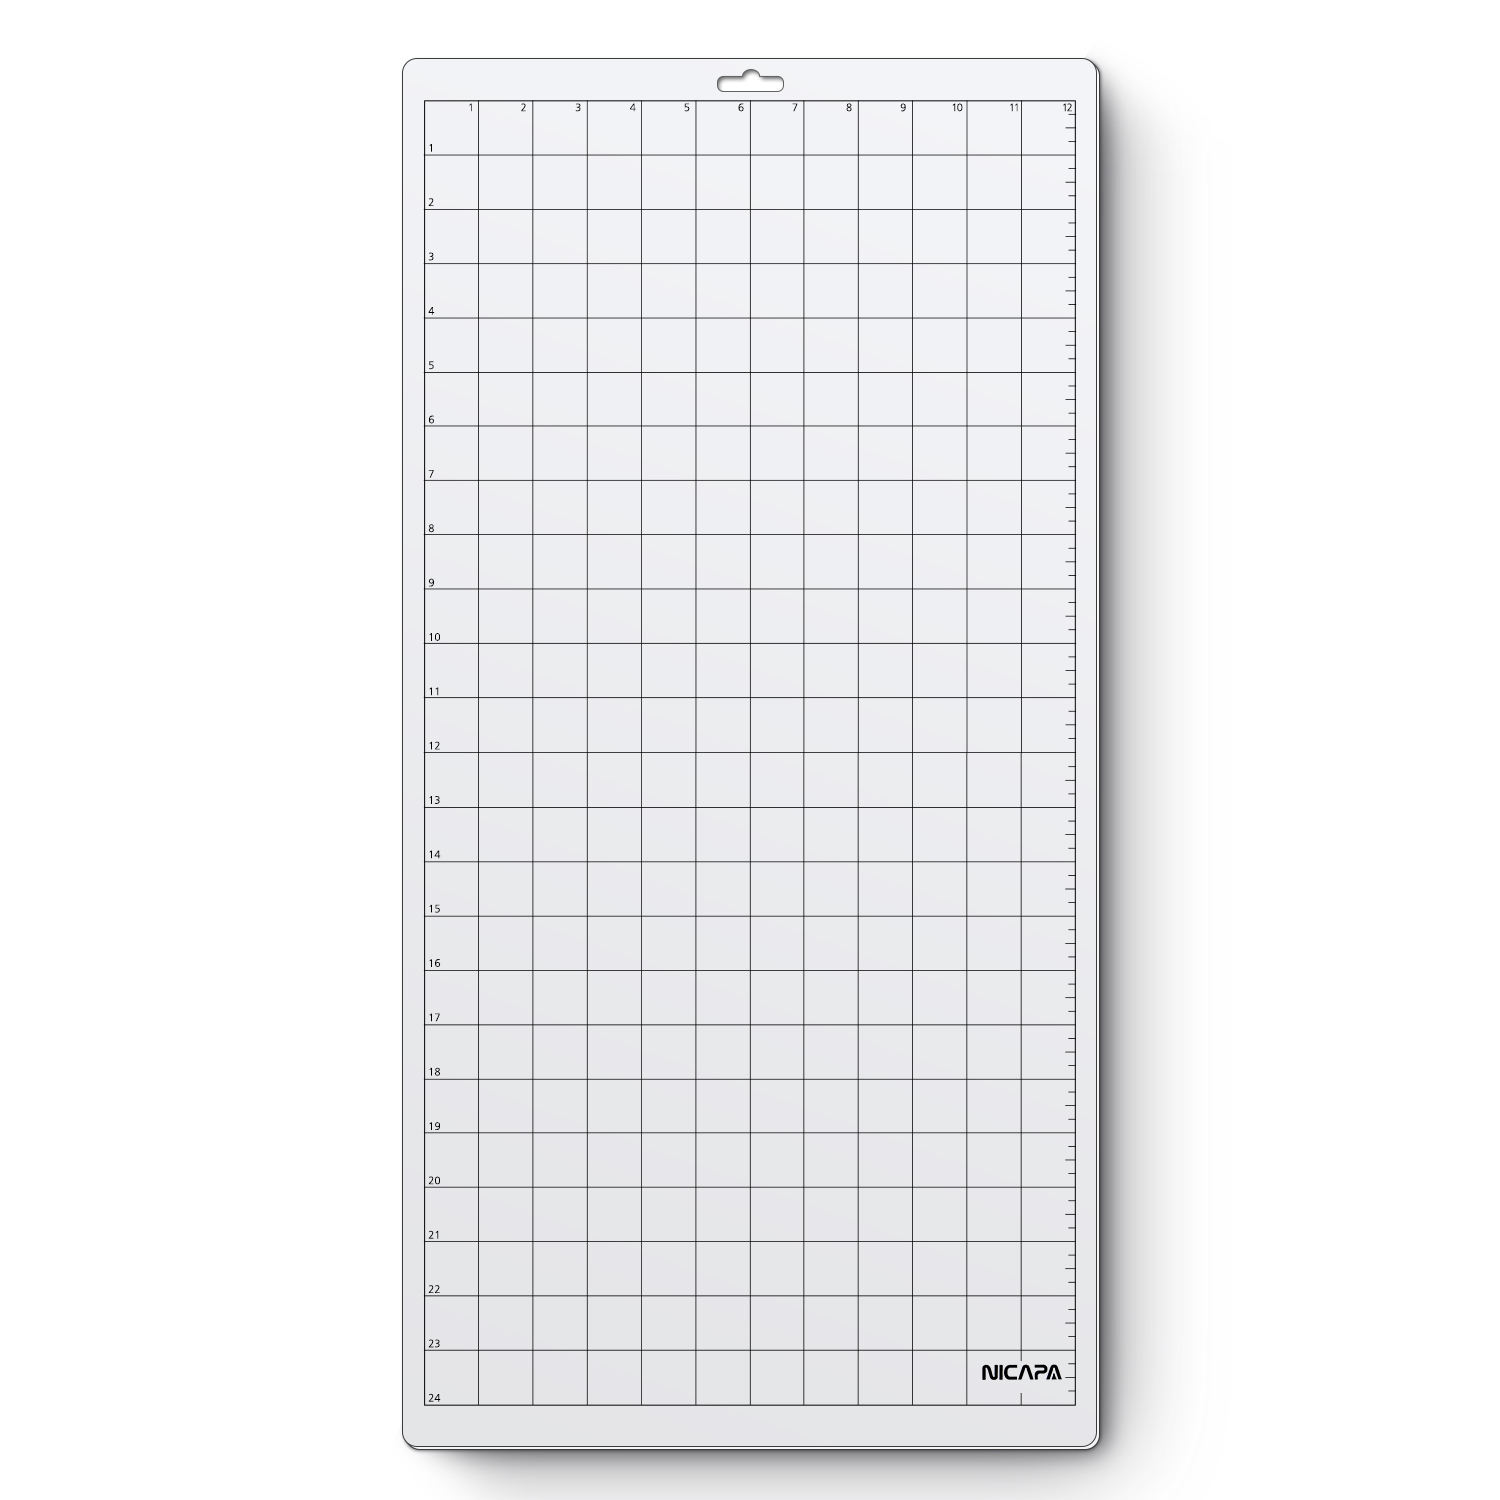 nicapa plotter cutting mat for Silhouette machine, 12 x 24 inch, standard-grip,1 pcs/pack